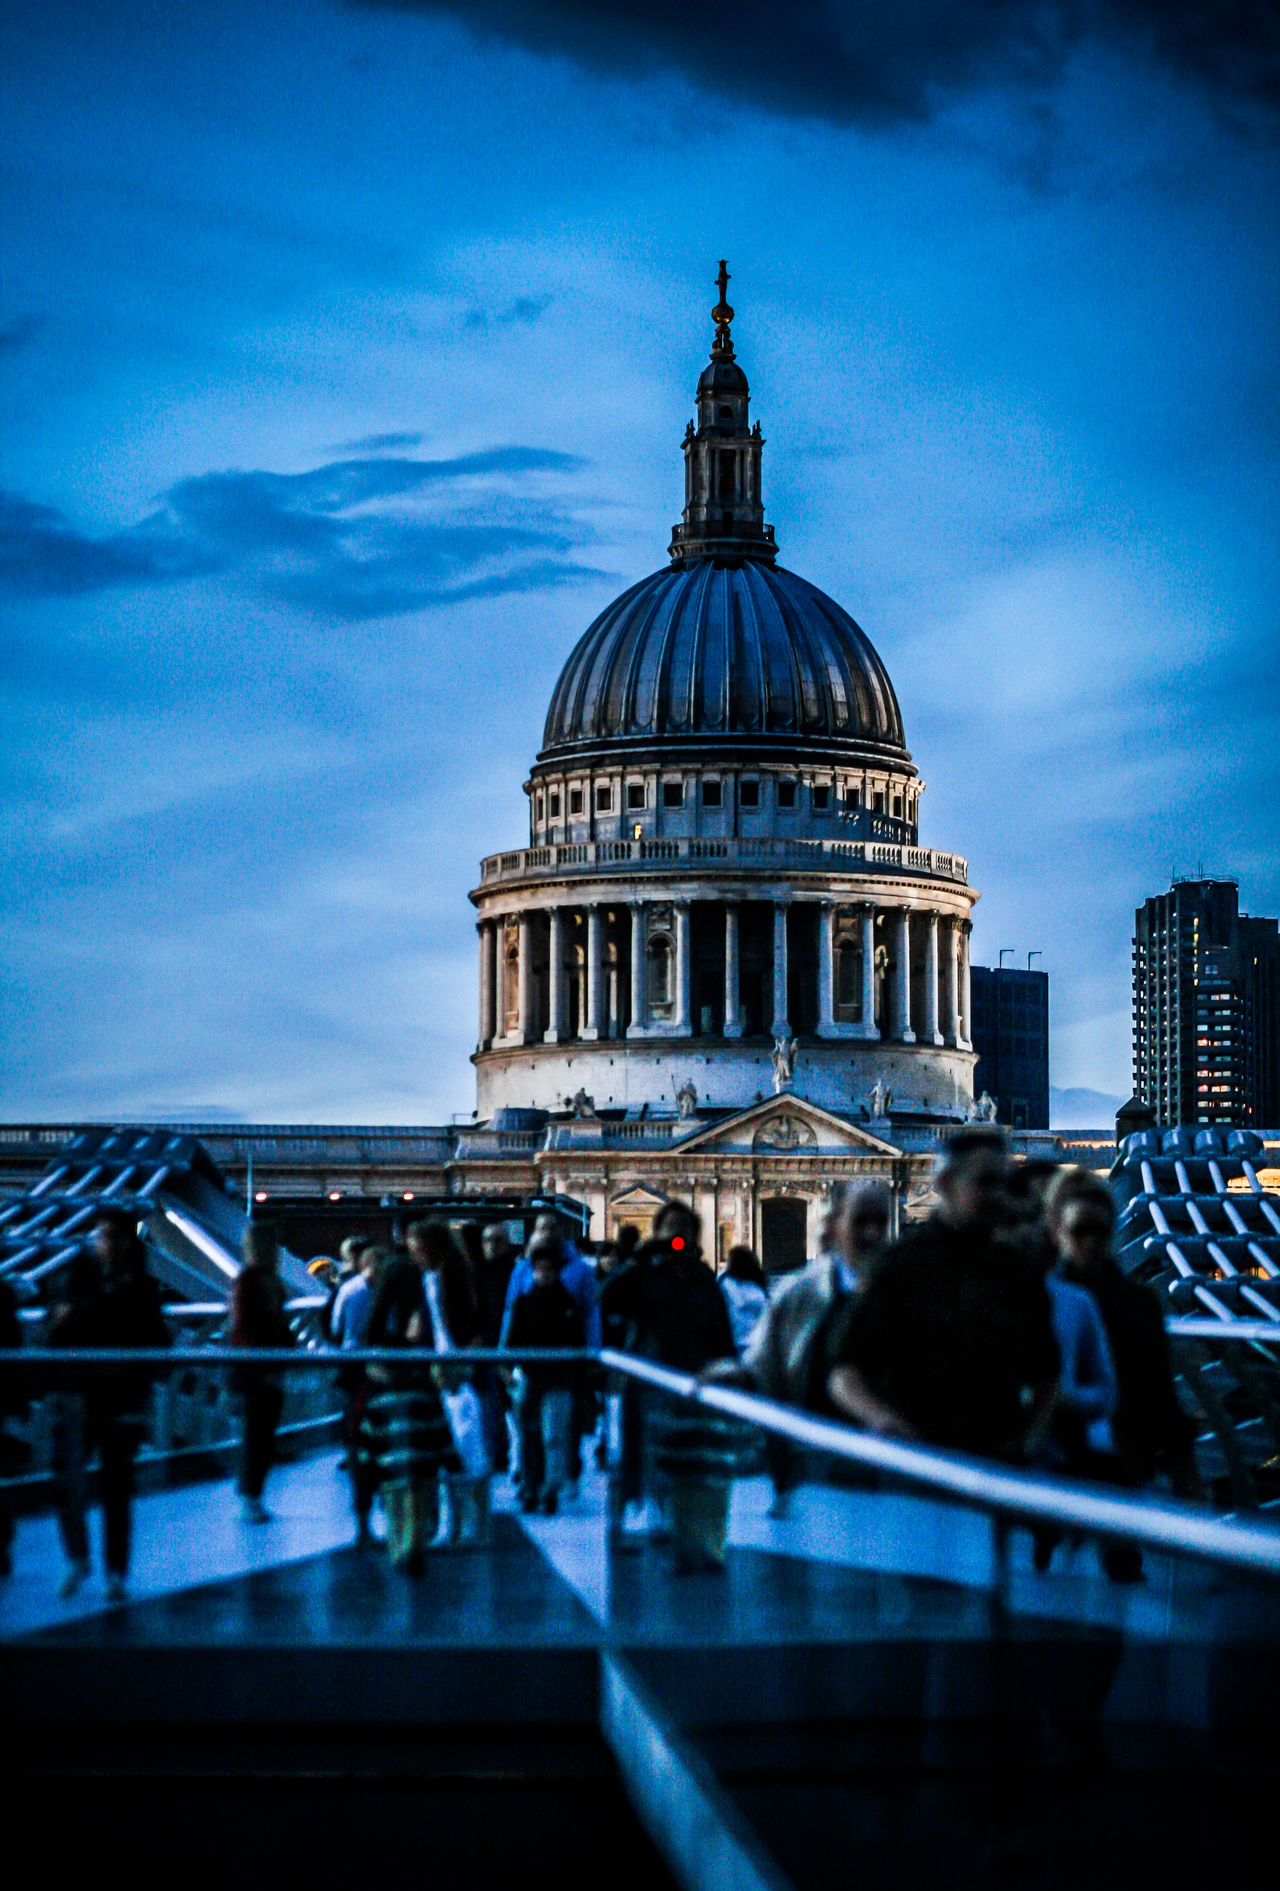 Architecture Blue Sky Bridge - Man Made Structure Cathedral City City Life Day Dome Famous Places Landmarks London London Lifestyle LONDON❤ Night Outdoors People Religion Sky St Paul's Cathedral Tourist Travel Destinations Uk Urban Skyline